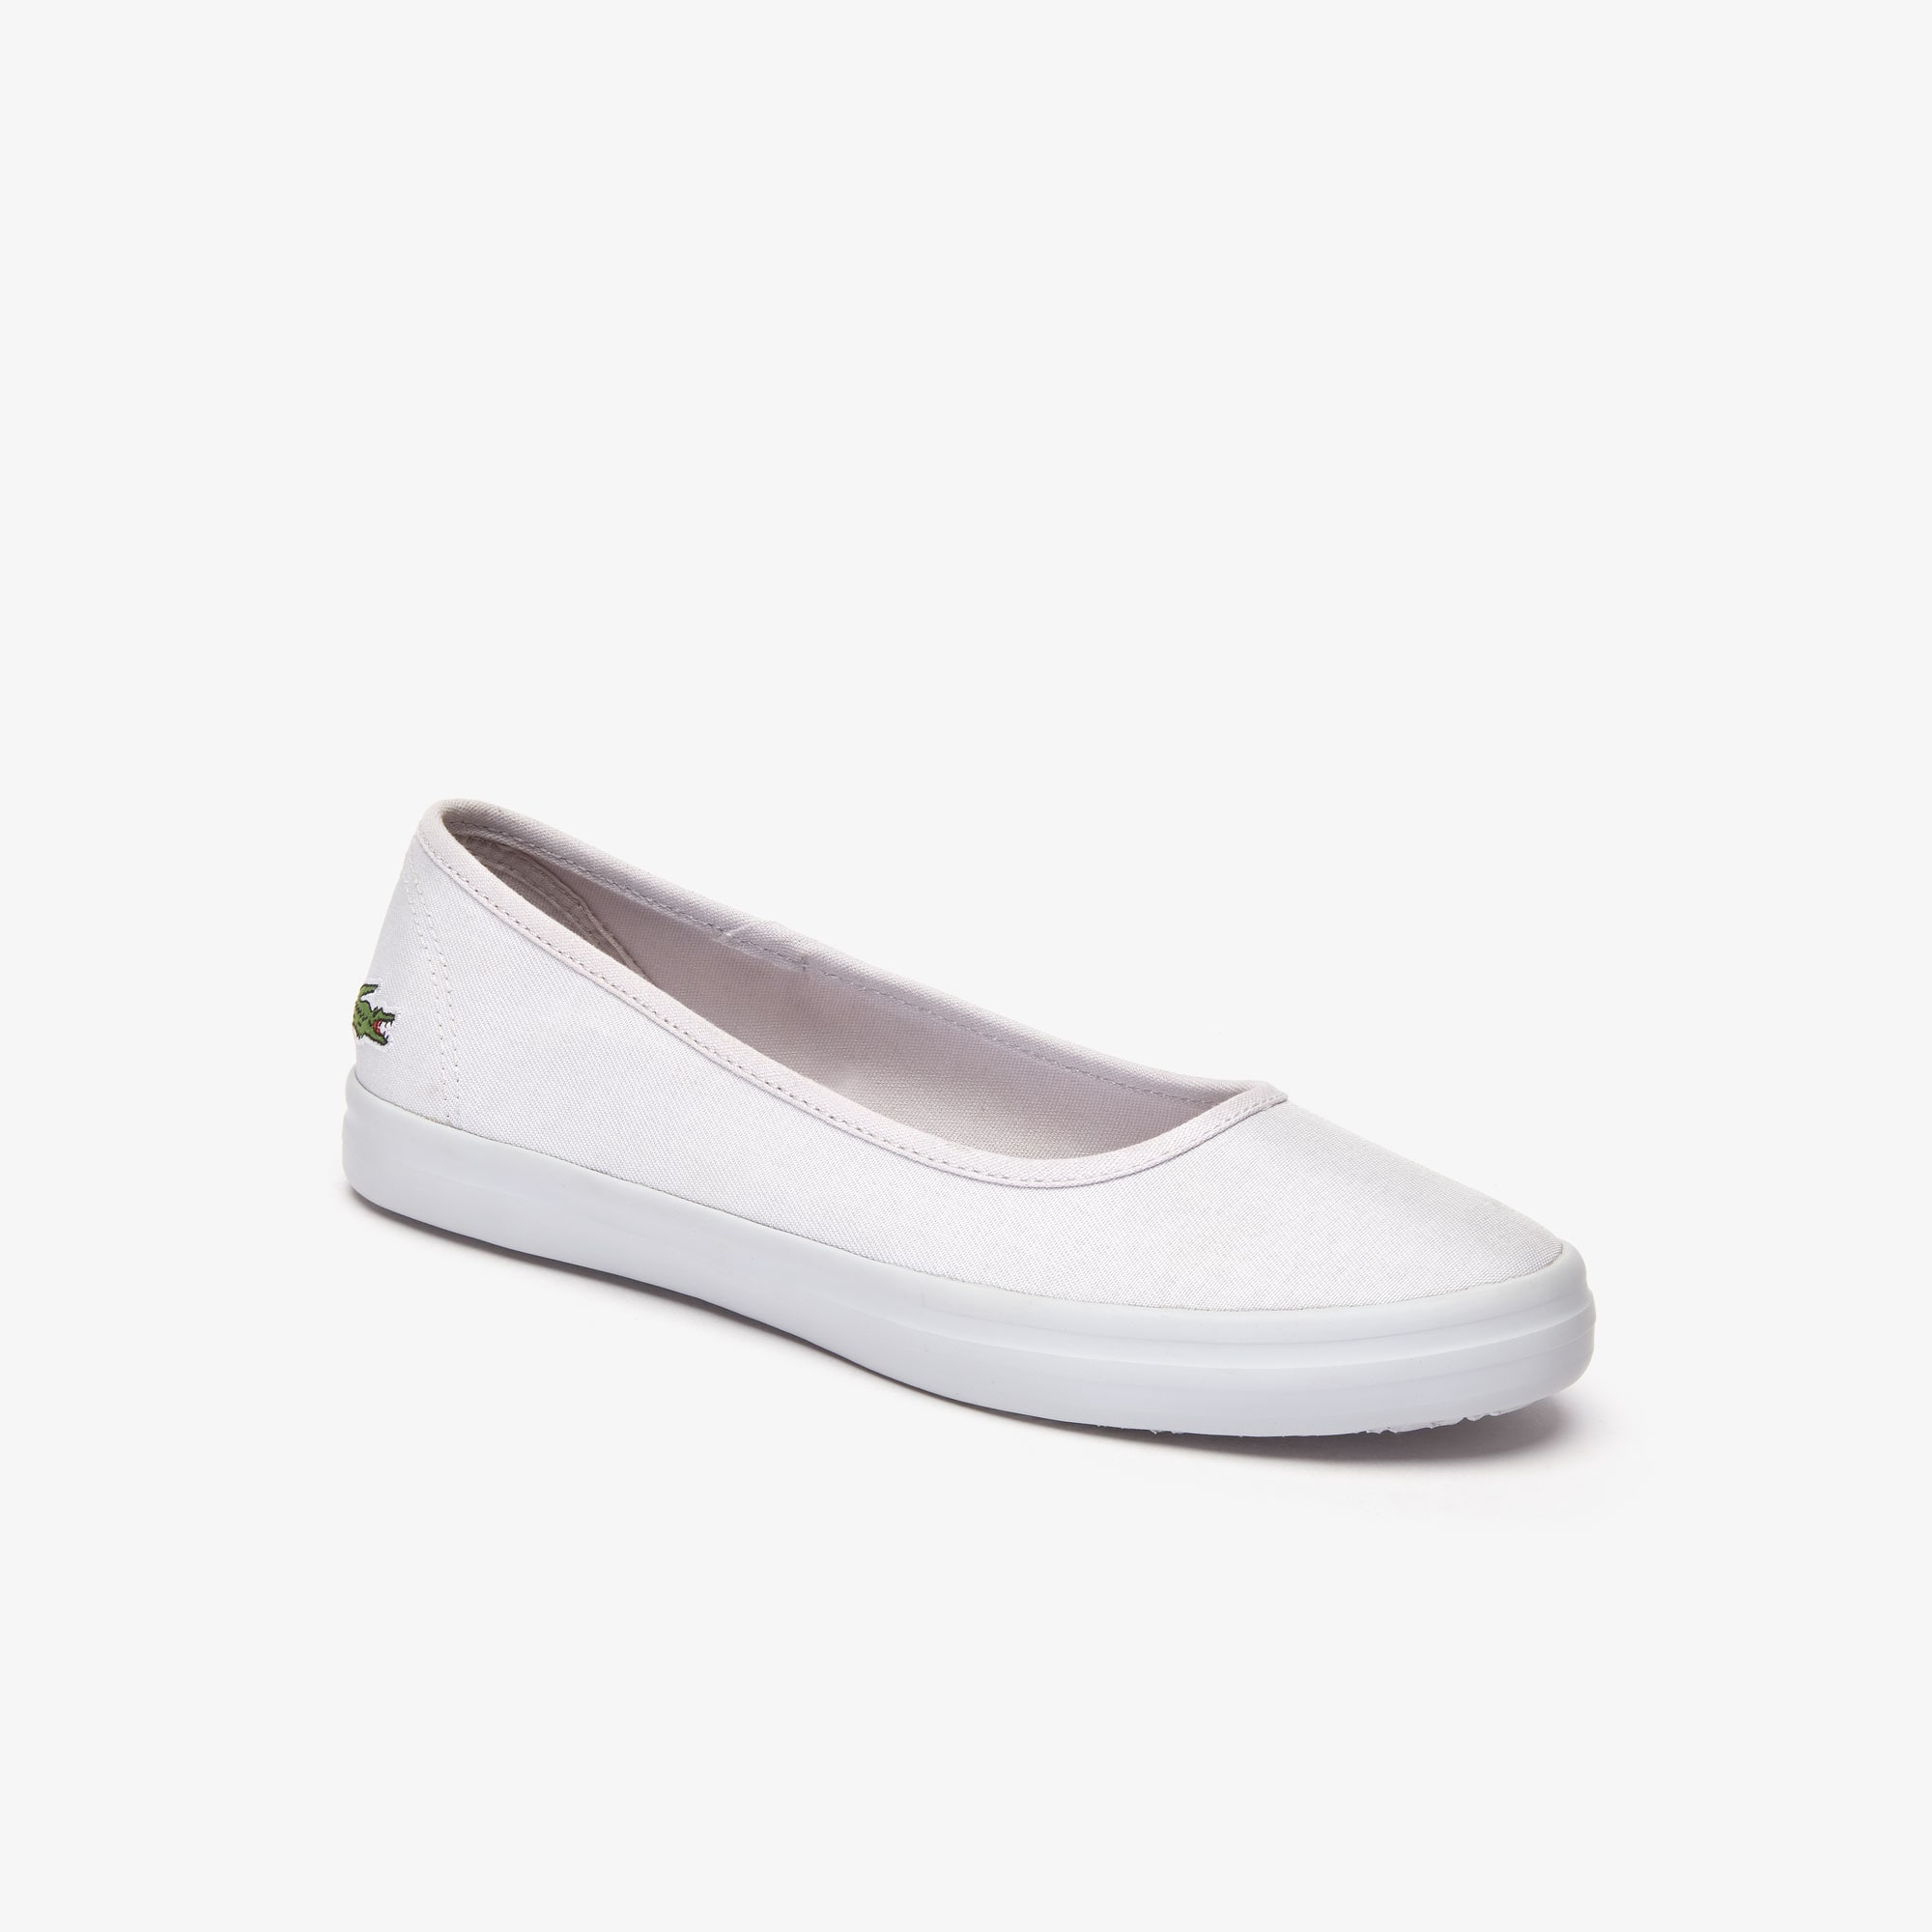 Lacoste Chaussures FemmeCollection FemmeCollection Lacoste Chaussures Chaussures Chaussures Lacoste FemmeCollection Lacoste FemmeCollection Chaussures Qdsrth